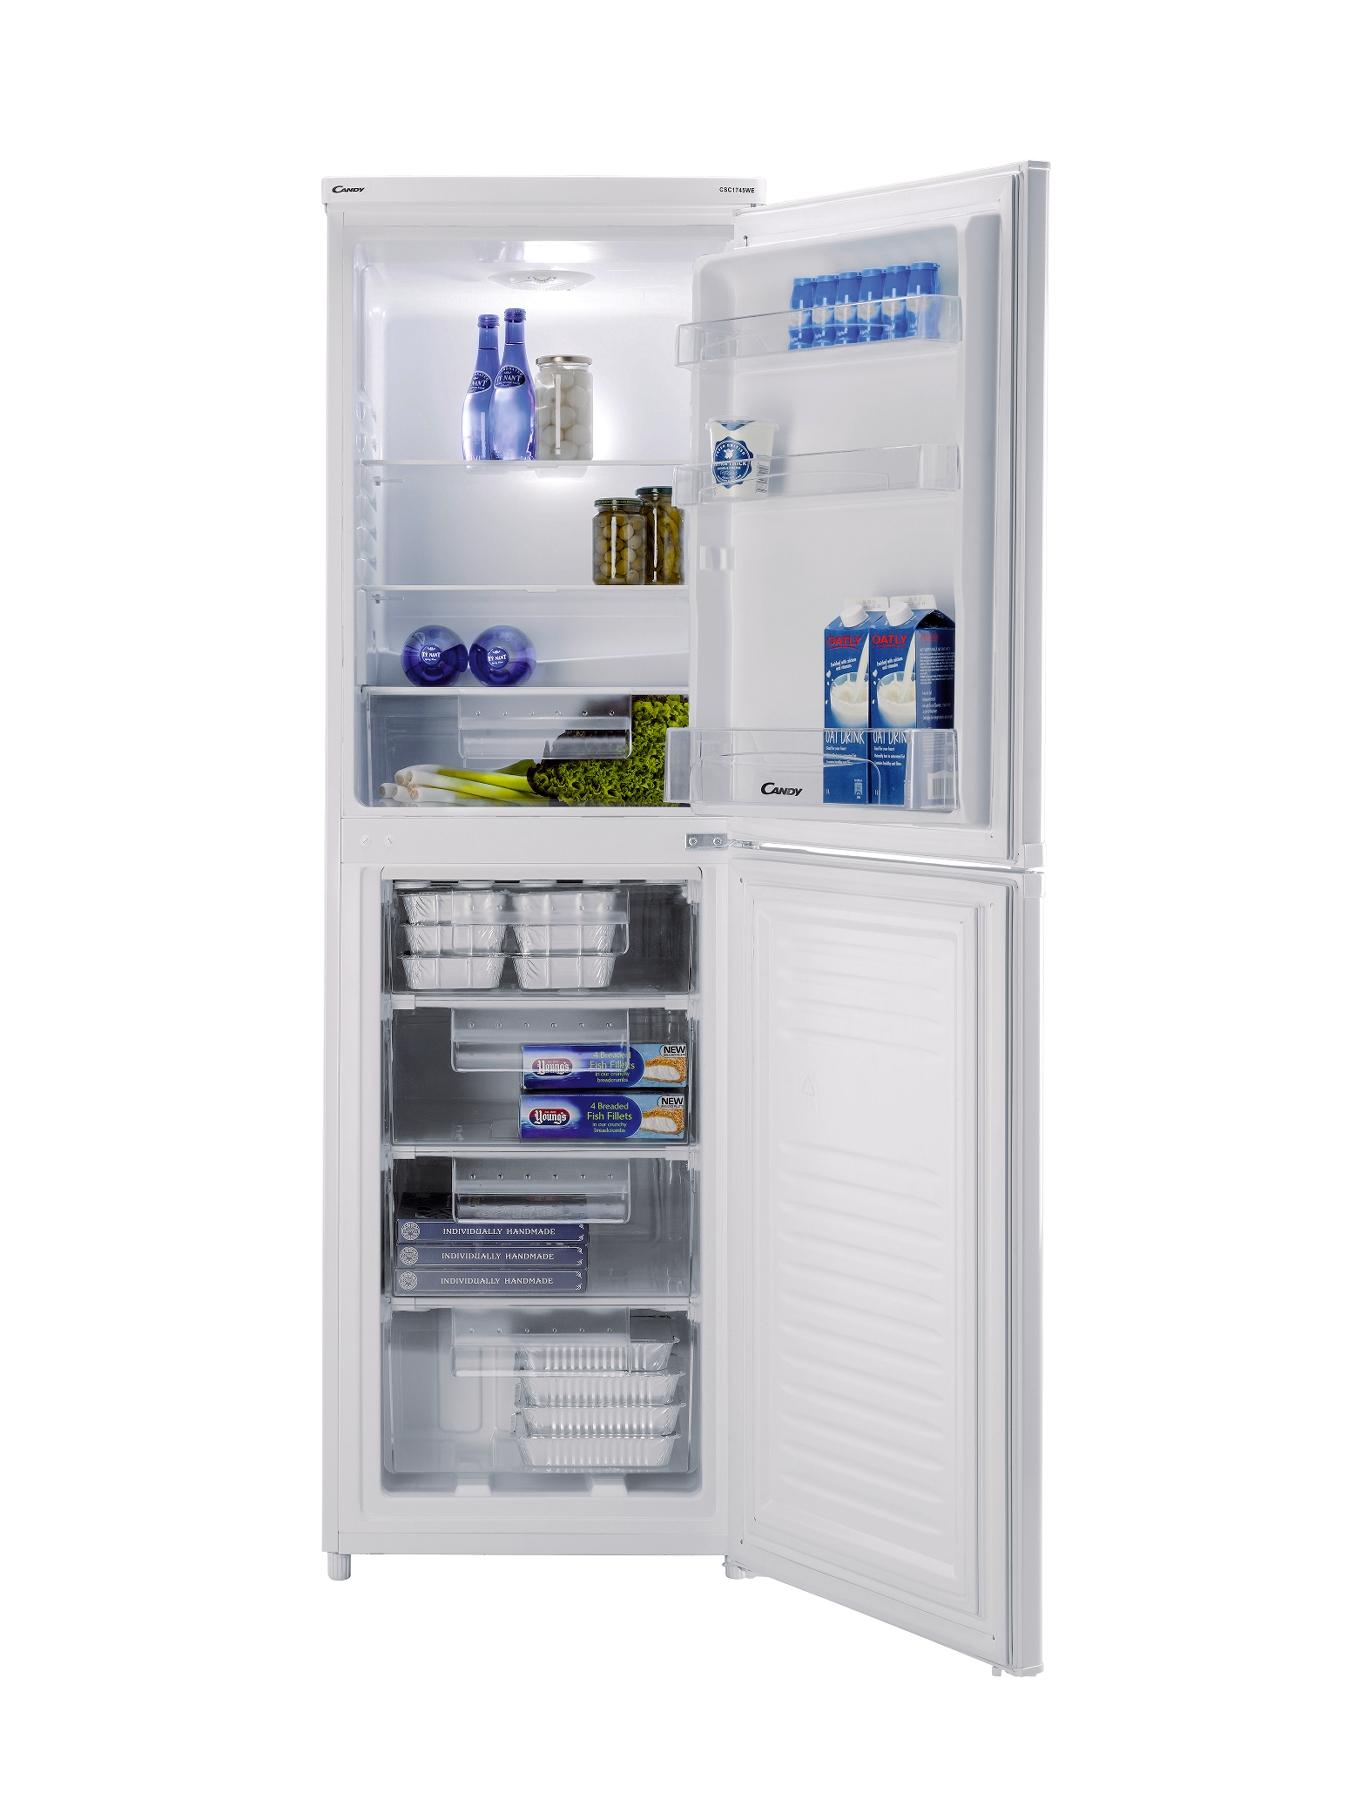 CSC1745WE 55cm Fridge Freezer - White